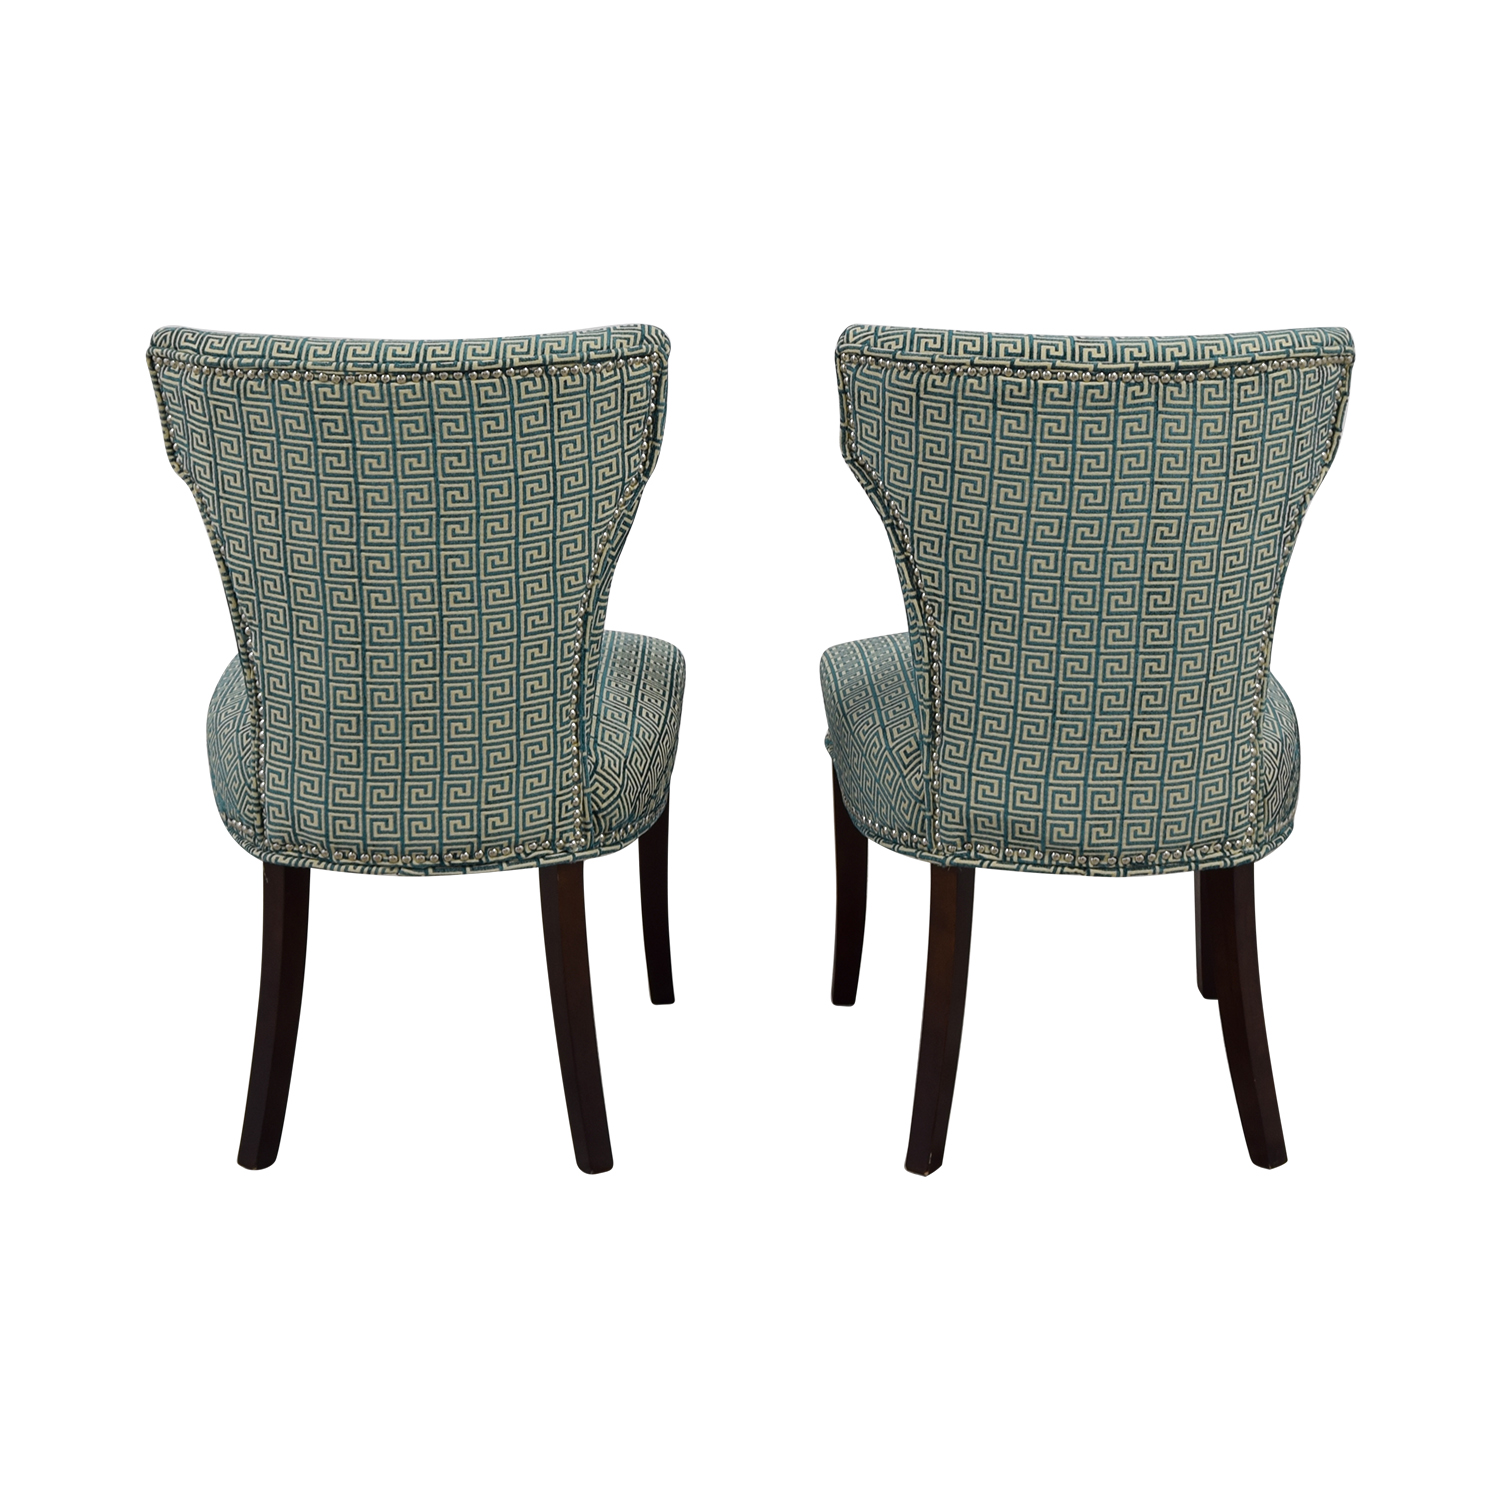 buy Cynthia Rowley Accent Chairs Cynthia Rowley Accent Chairs